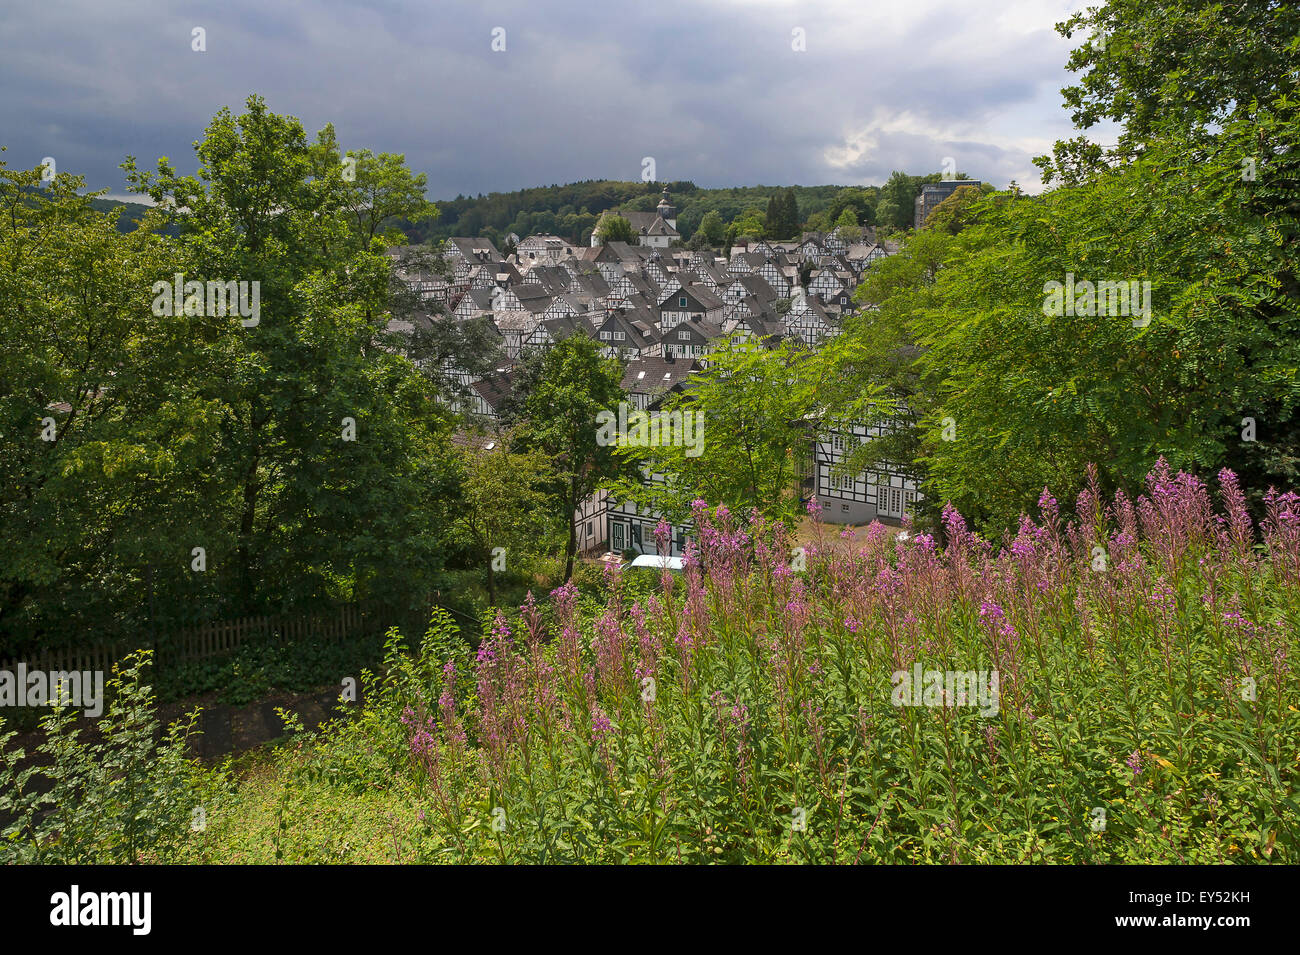 Views of the 'Alter Flecken', Freudenberg's historic core with half-timbered houses from the 17th century, - Stock Image